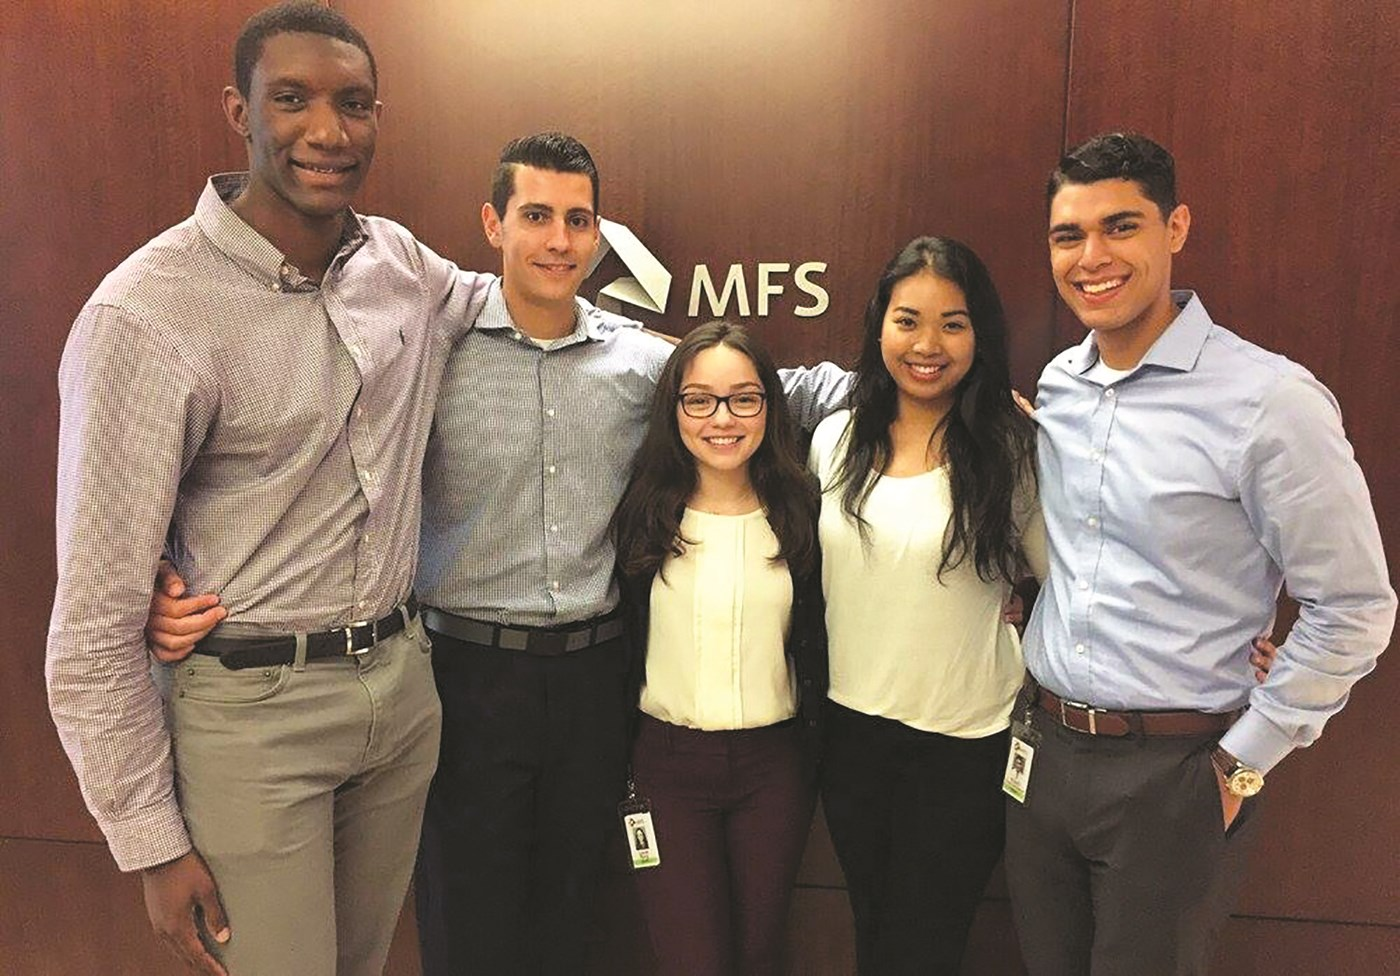 UMass Lowell junior finance and economics major Linda Barg (center), identity management co-op at MFS Investment Management